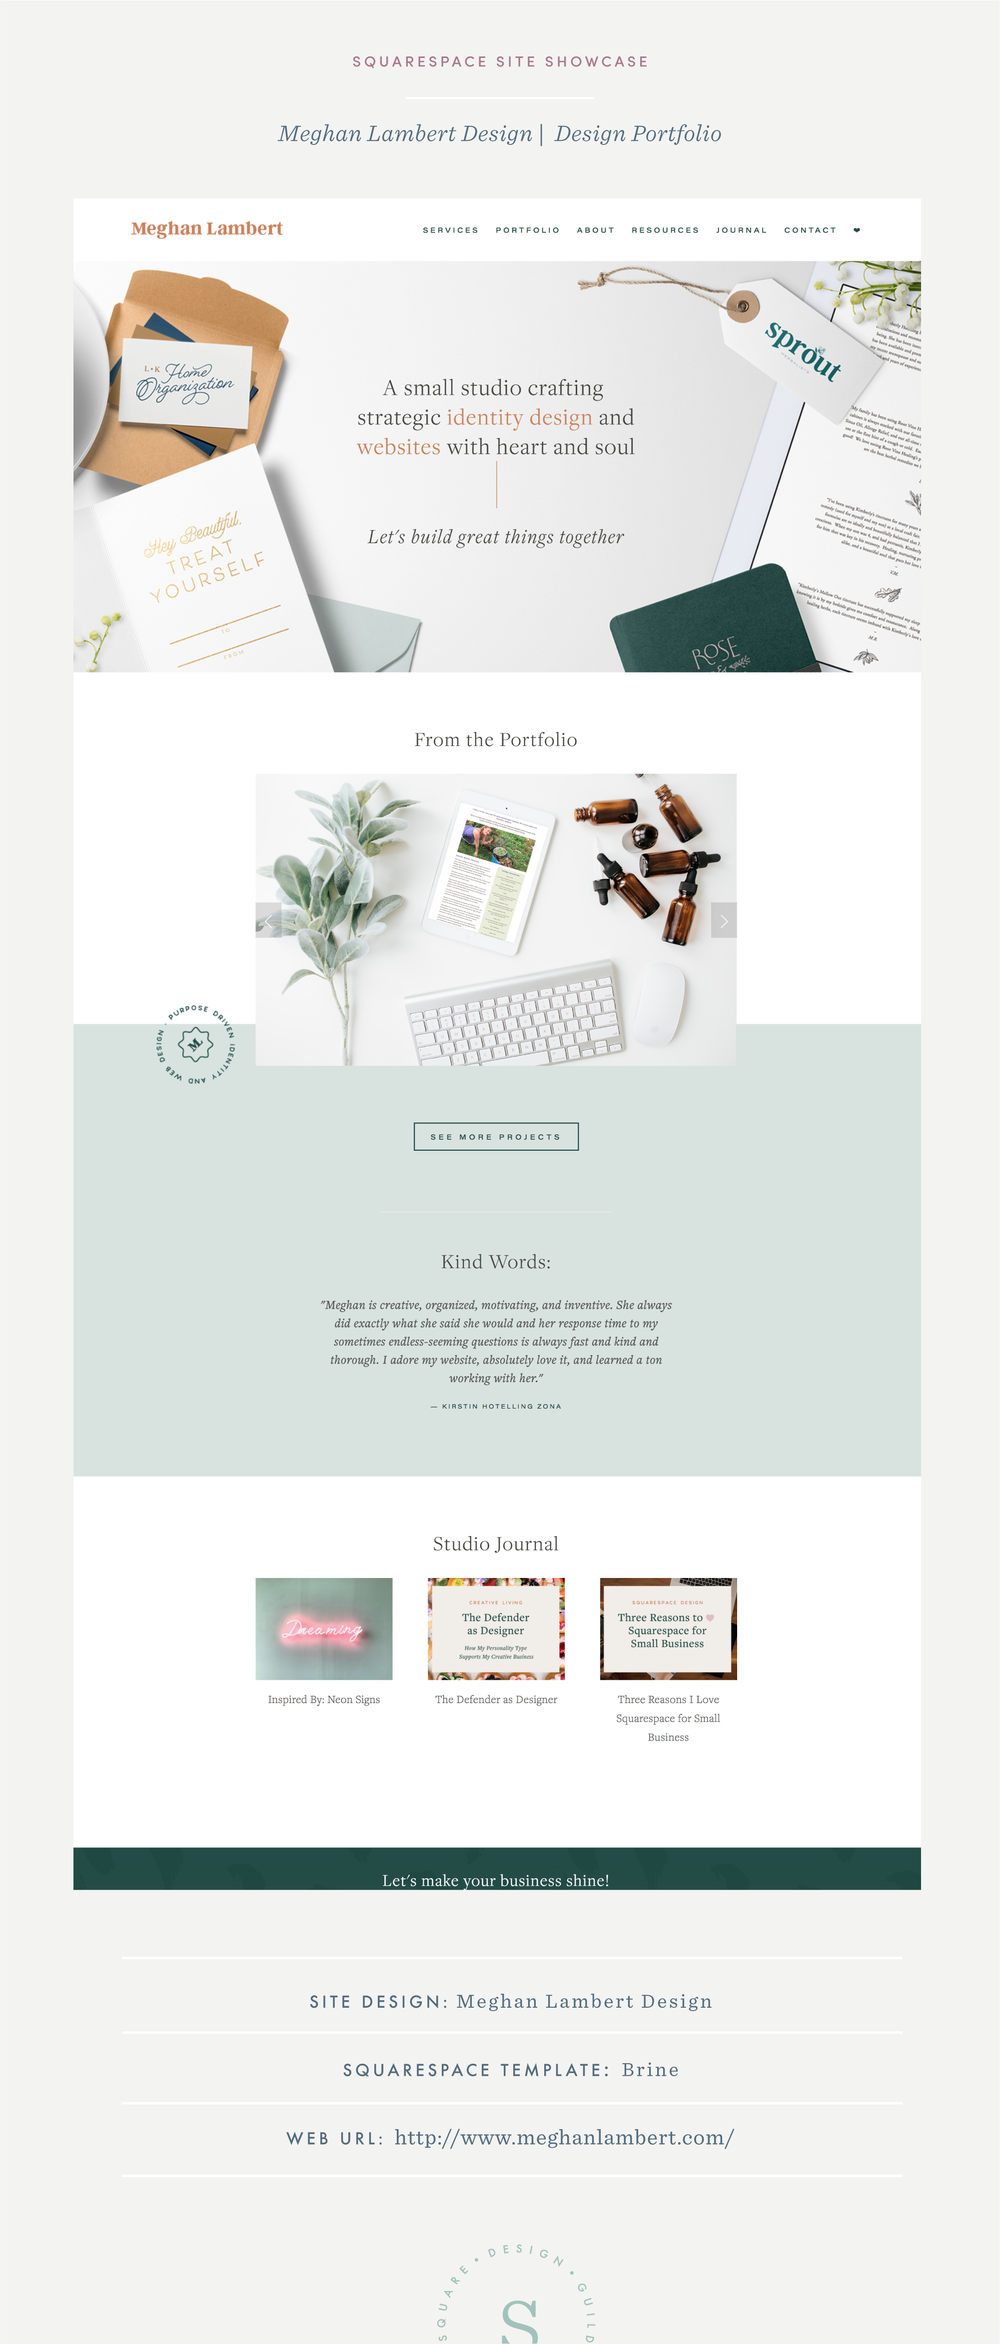 Designer Showcase on Squarespace with Fun Colors and Illustrations